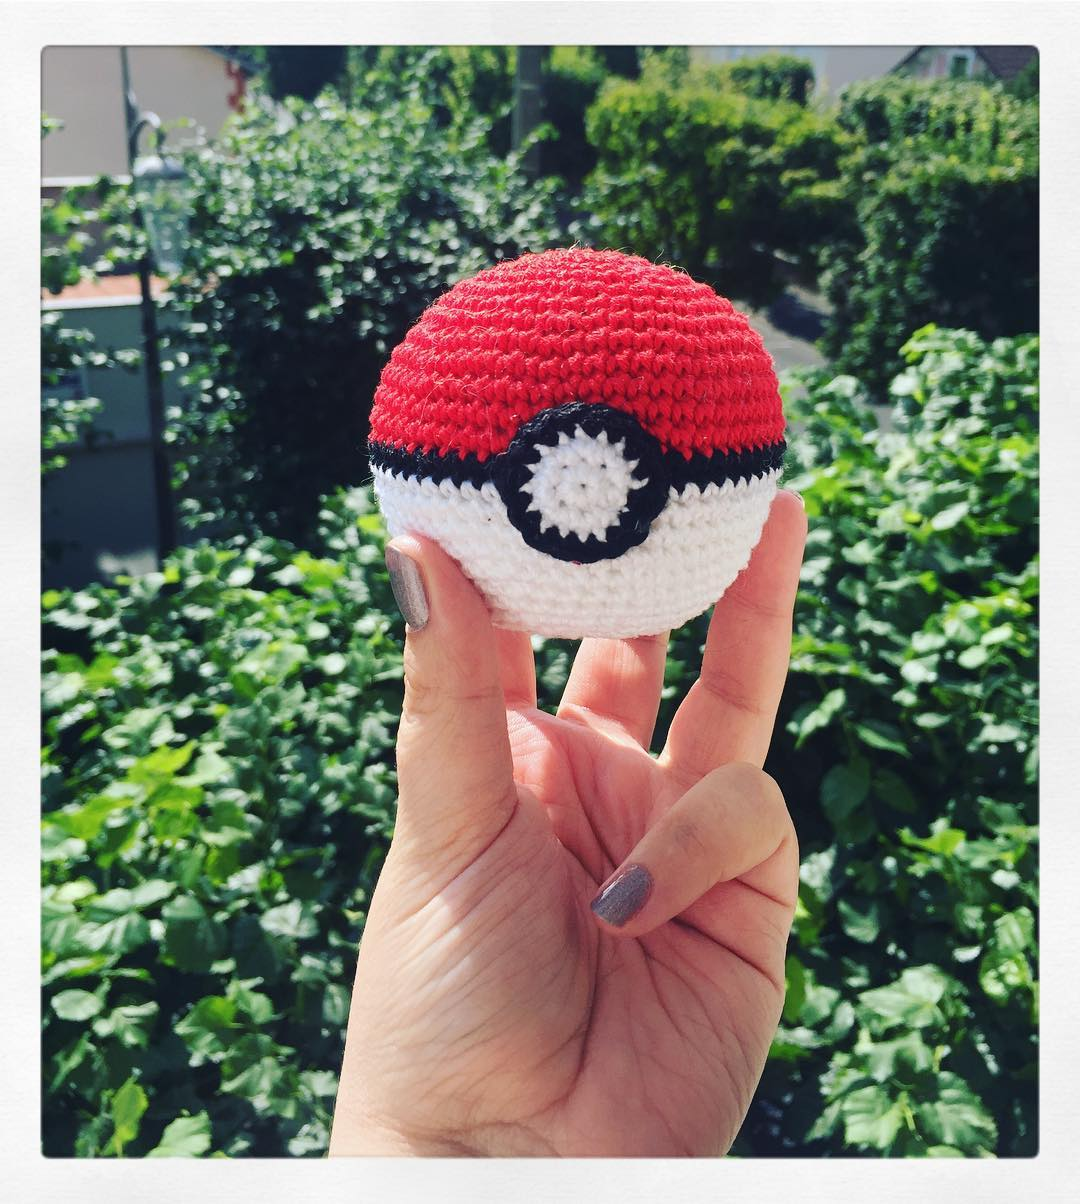 Pokemon Amigurumi: The Best Ever Pokemon Go Amigurumi Crochet ... | 1204x1080